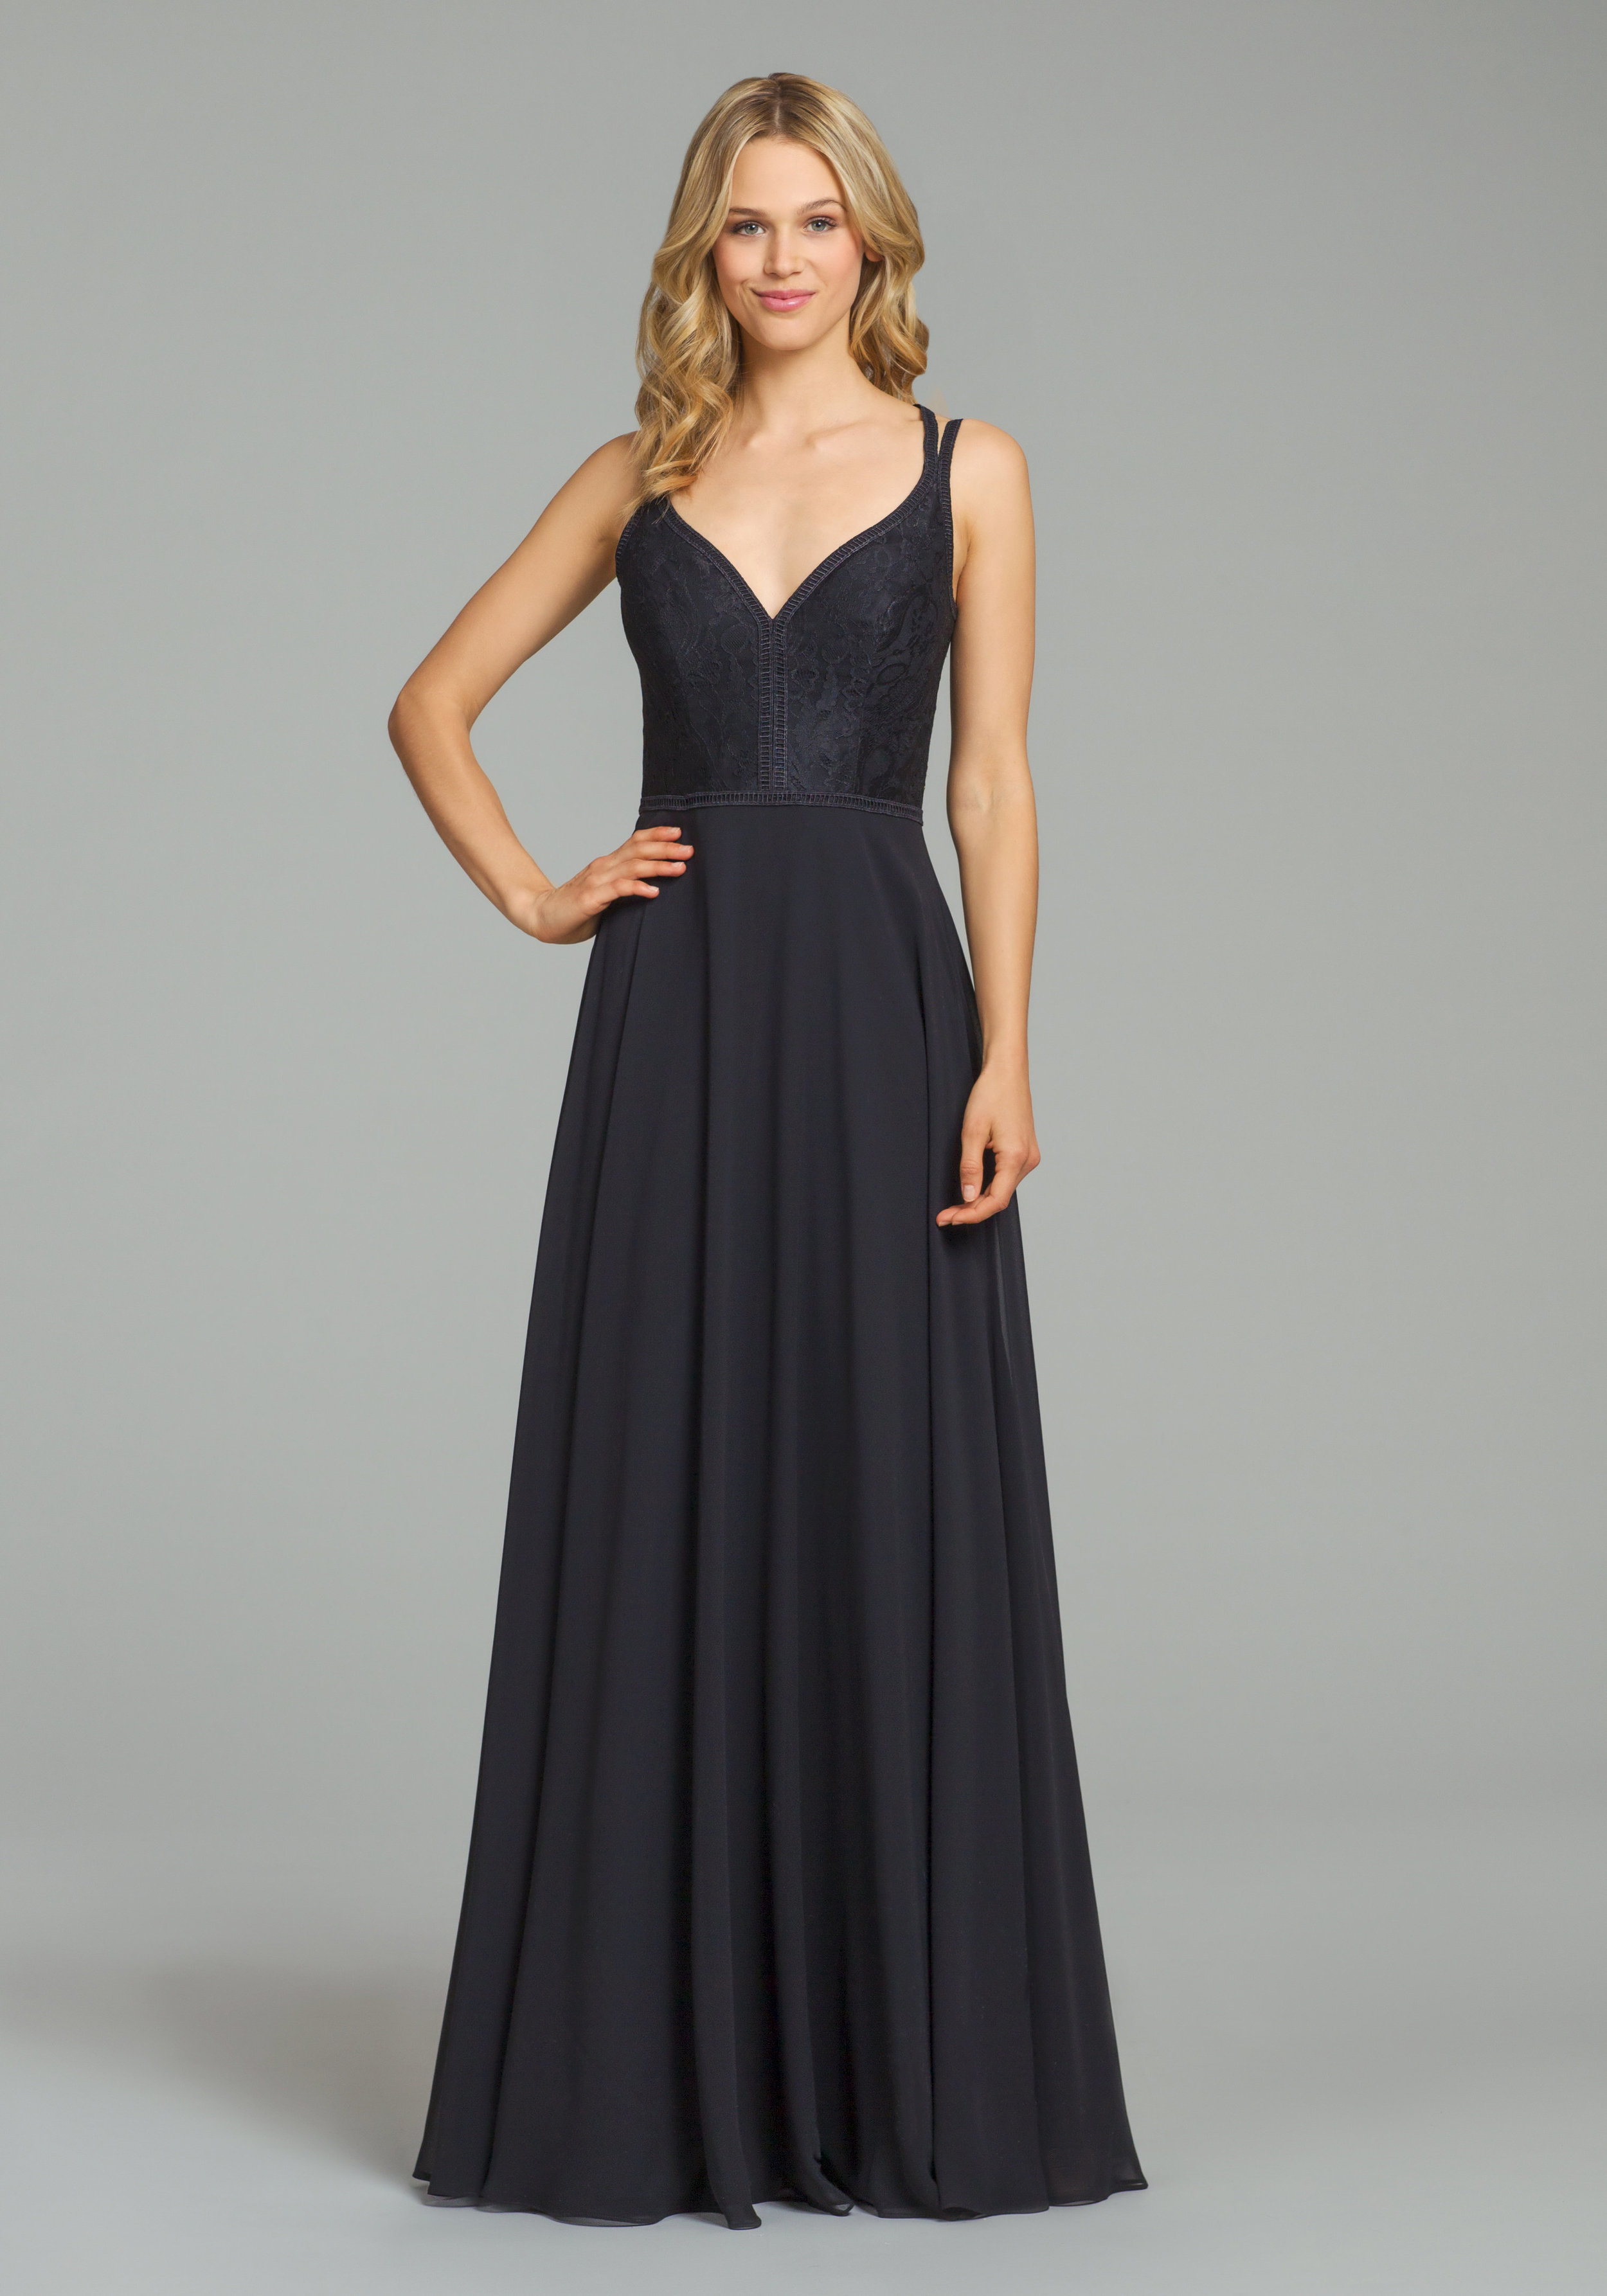 hayley-paige-occasions-bridesmaids-fall-2018-style-5864.jpg